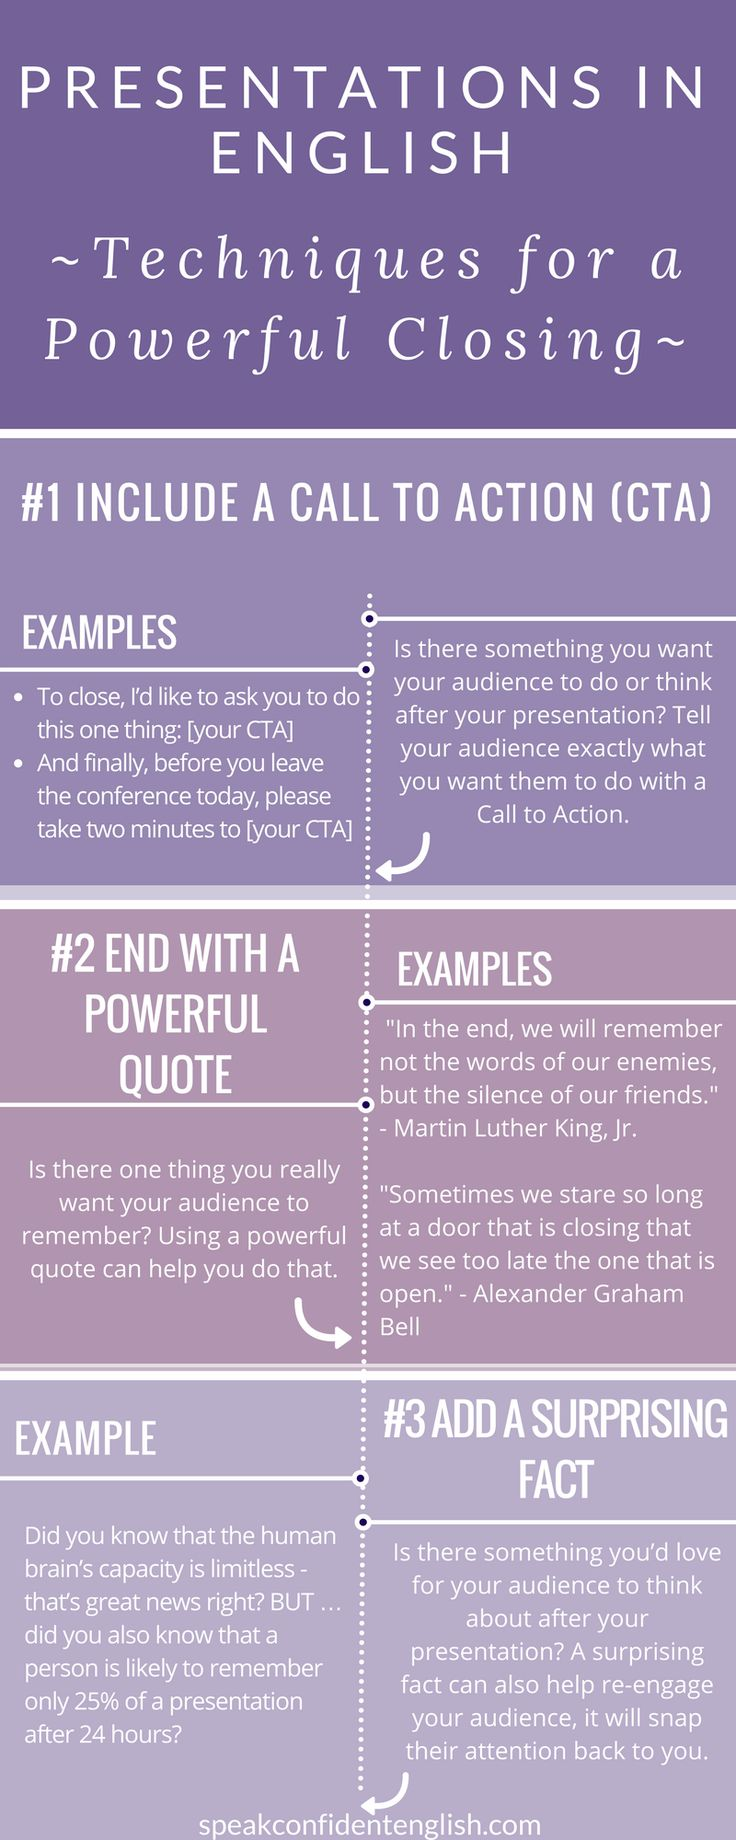 Preparing for a presentation in English? Use this lesson to help you complete an impressive presentation. http://www.speakconfidentenglish.com/english-presentations-closings/?utm_campaign=coschedule&utm_source=pinterest&utm_medium=Speak%20Confident%20English%20%7C%20English%20Fluency%20Trainer&utm_content=Presentations%20in%20English%3A%20Finish%20with%20a%20Powerful%20Closing